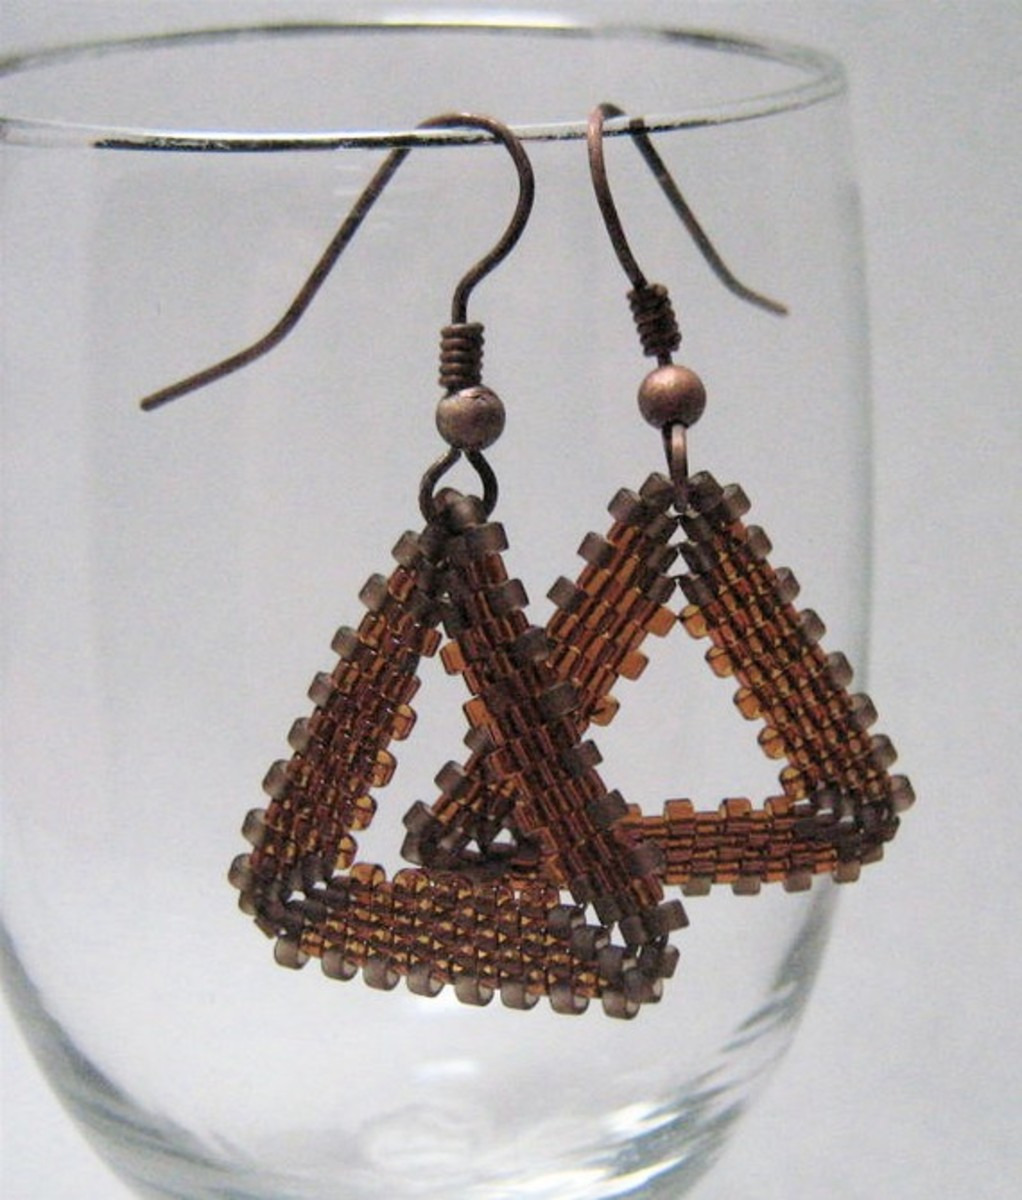 You can attach your earring or pendant loops at the triangle points or in the middle of the triangle sides.  Also consider different types of wire for your earrings and different stringing options for pendants and necklaces.